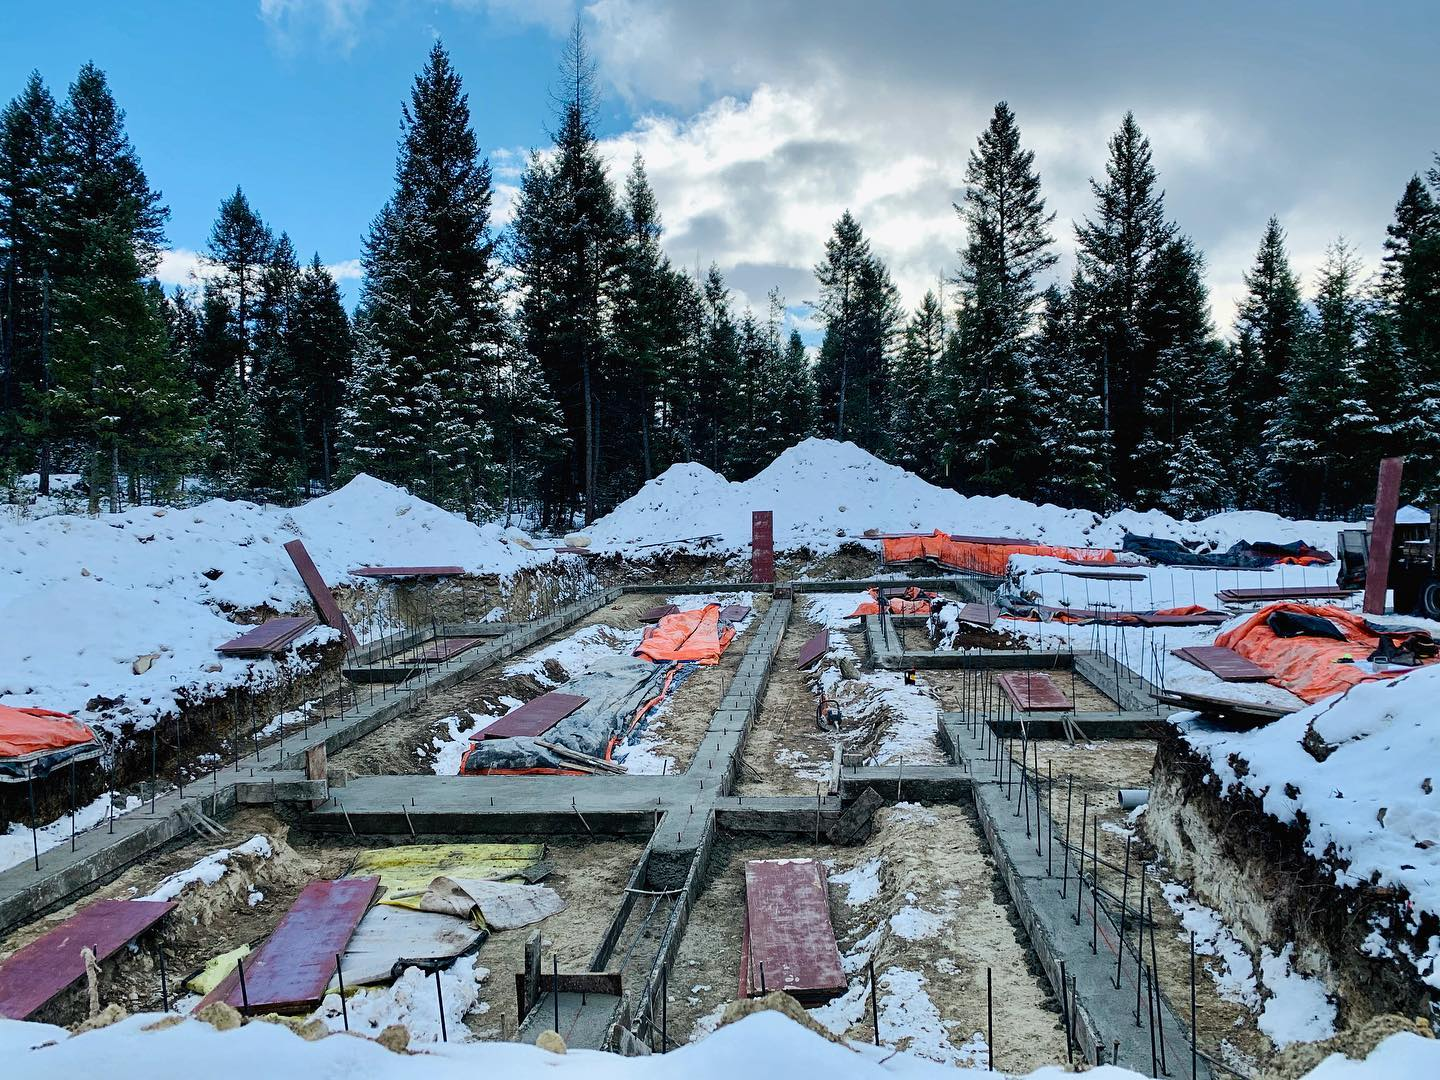 Another hole in the ground...loving these warm winter days! whitefish custom home builder